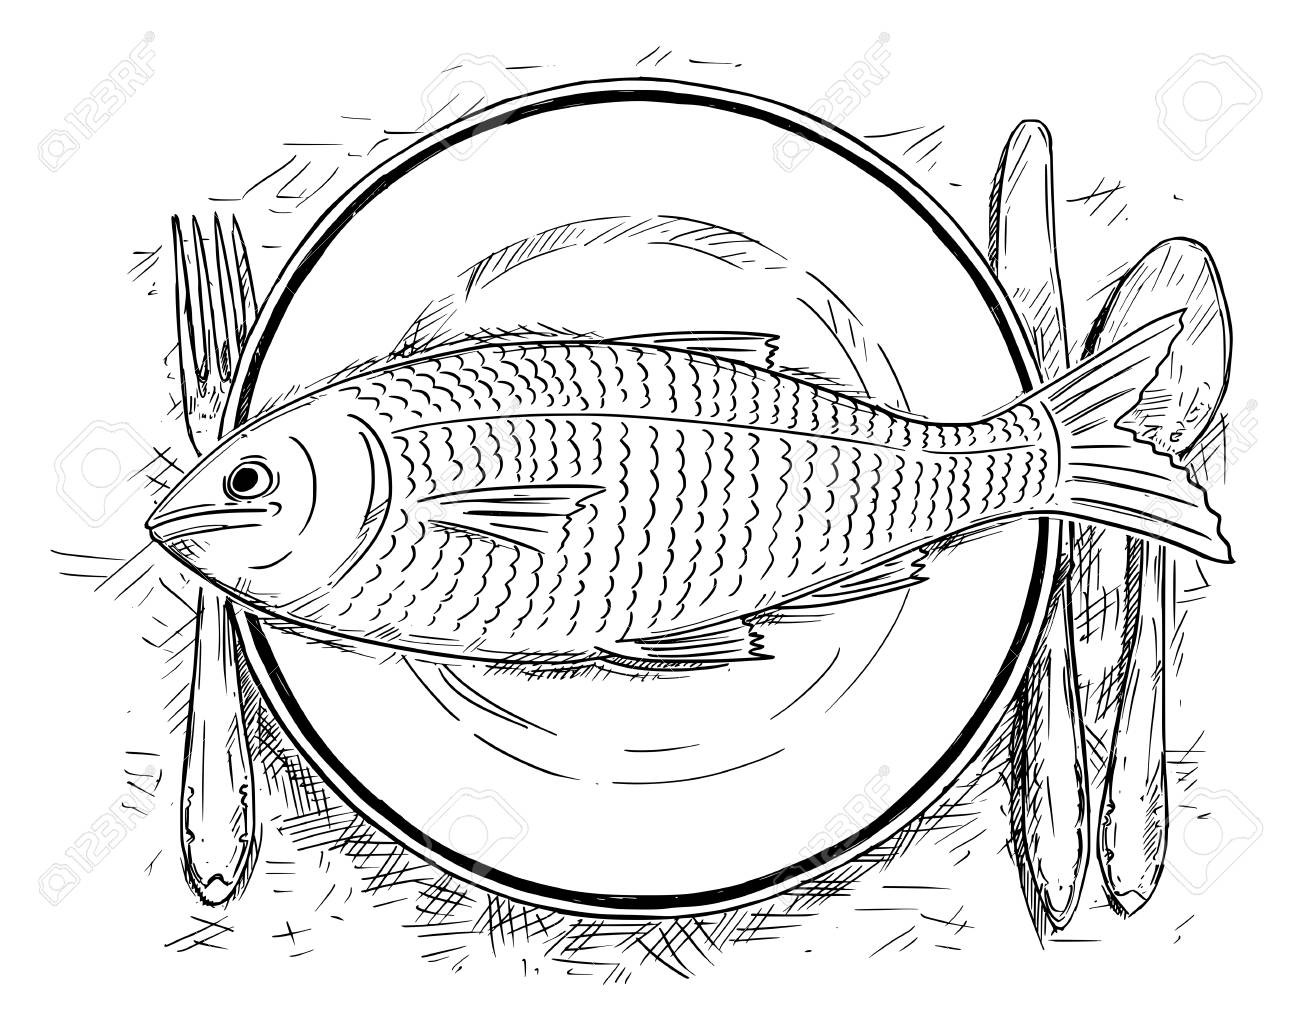 Cartoon Drawing Illustration Of Top View Of Fish Food On Dinner Royalty Free Cliparts Vectors And Stock Illustration Image 124624927